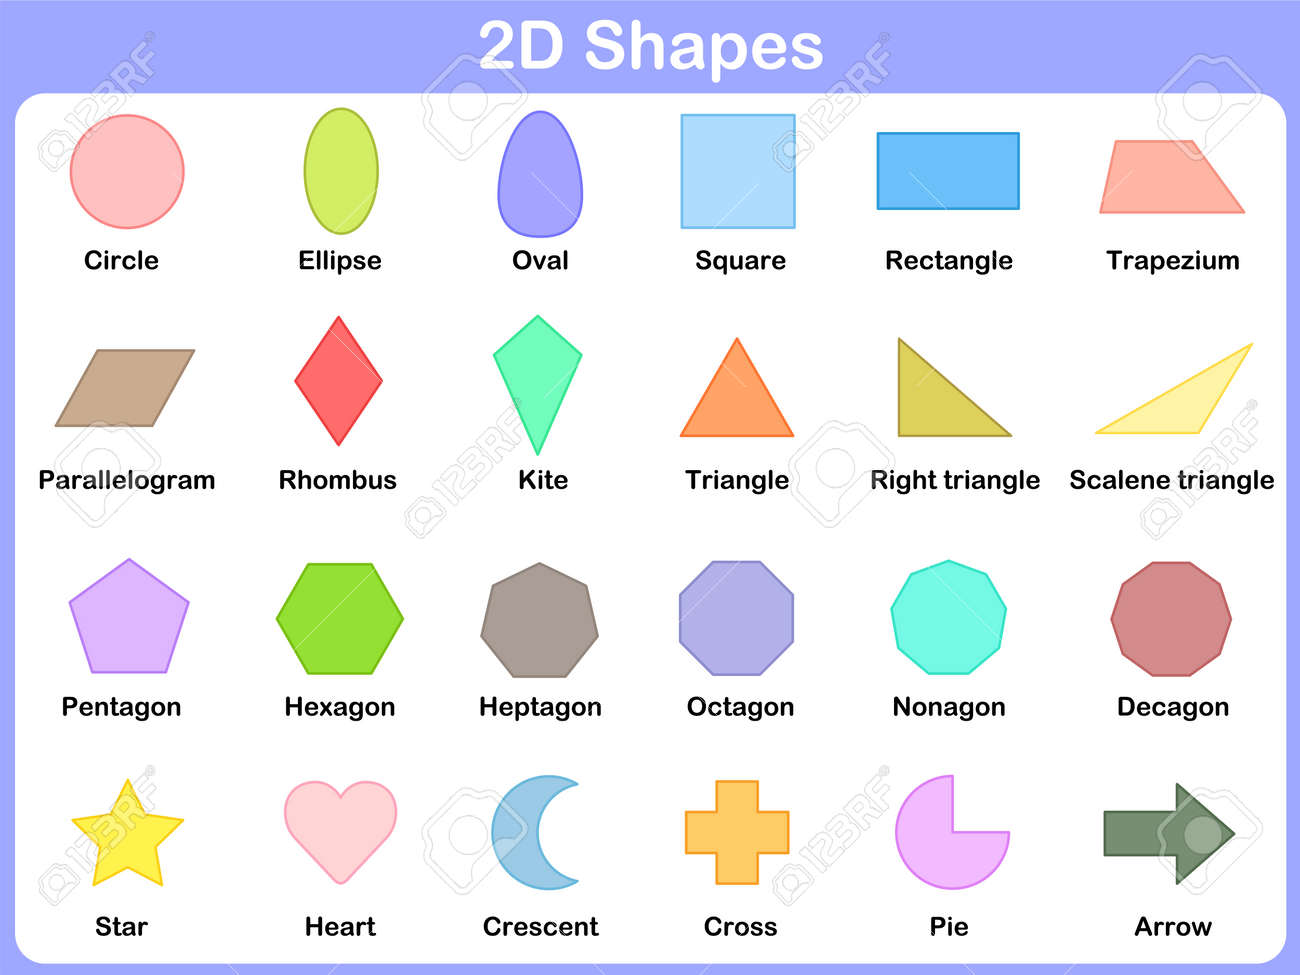 shape 2d : learning the 2d shapes for kids royalty free cliparts